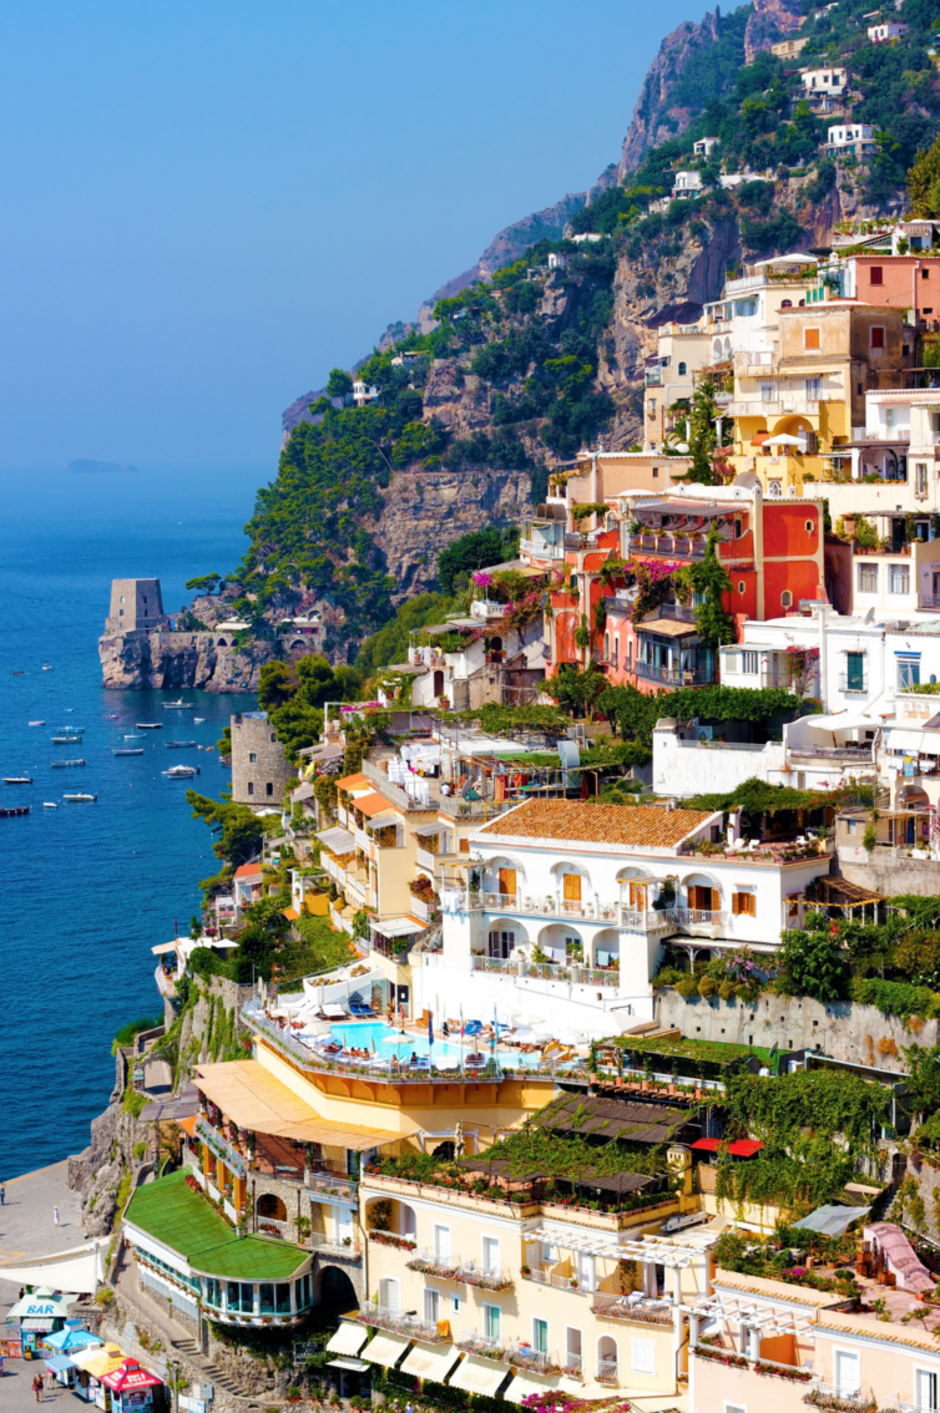 15 Photos That Will Make You Want To Visit The Amalfi Coast Travel Through Europe Europe Travel Places To Travel